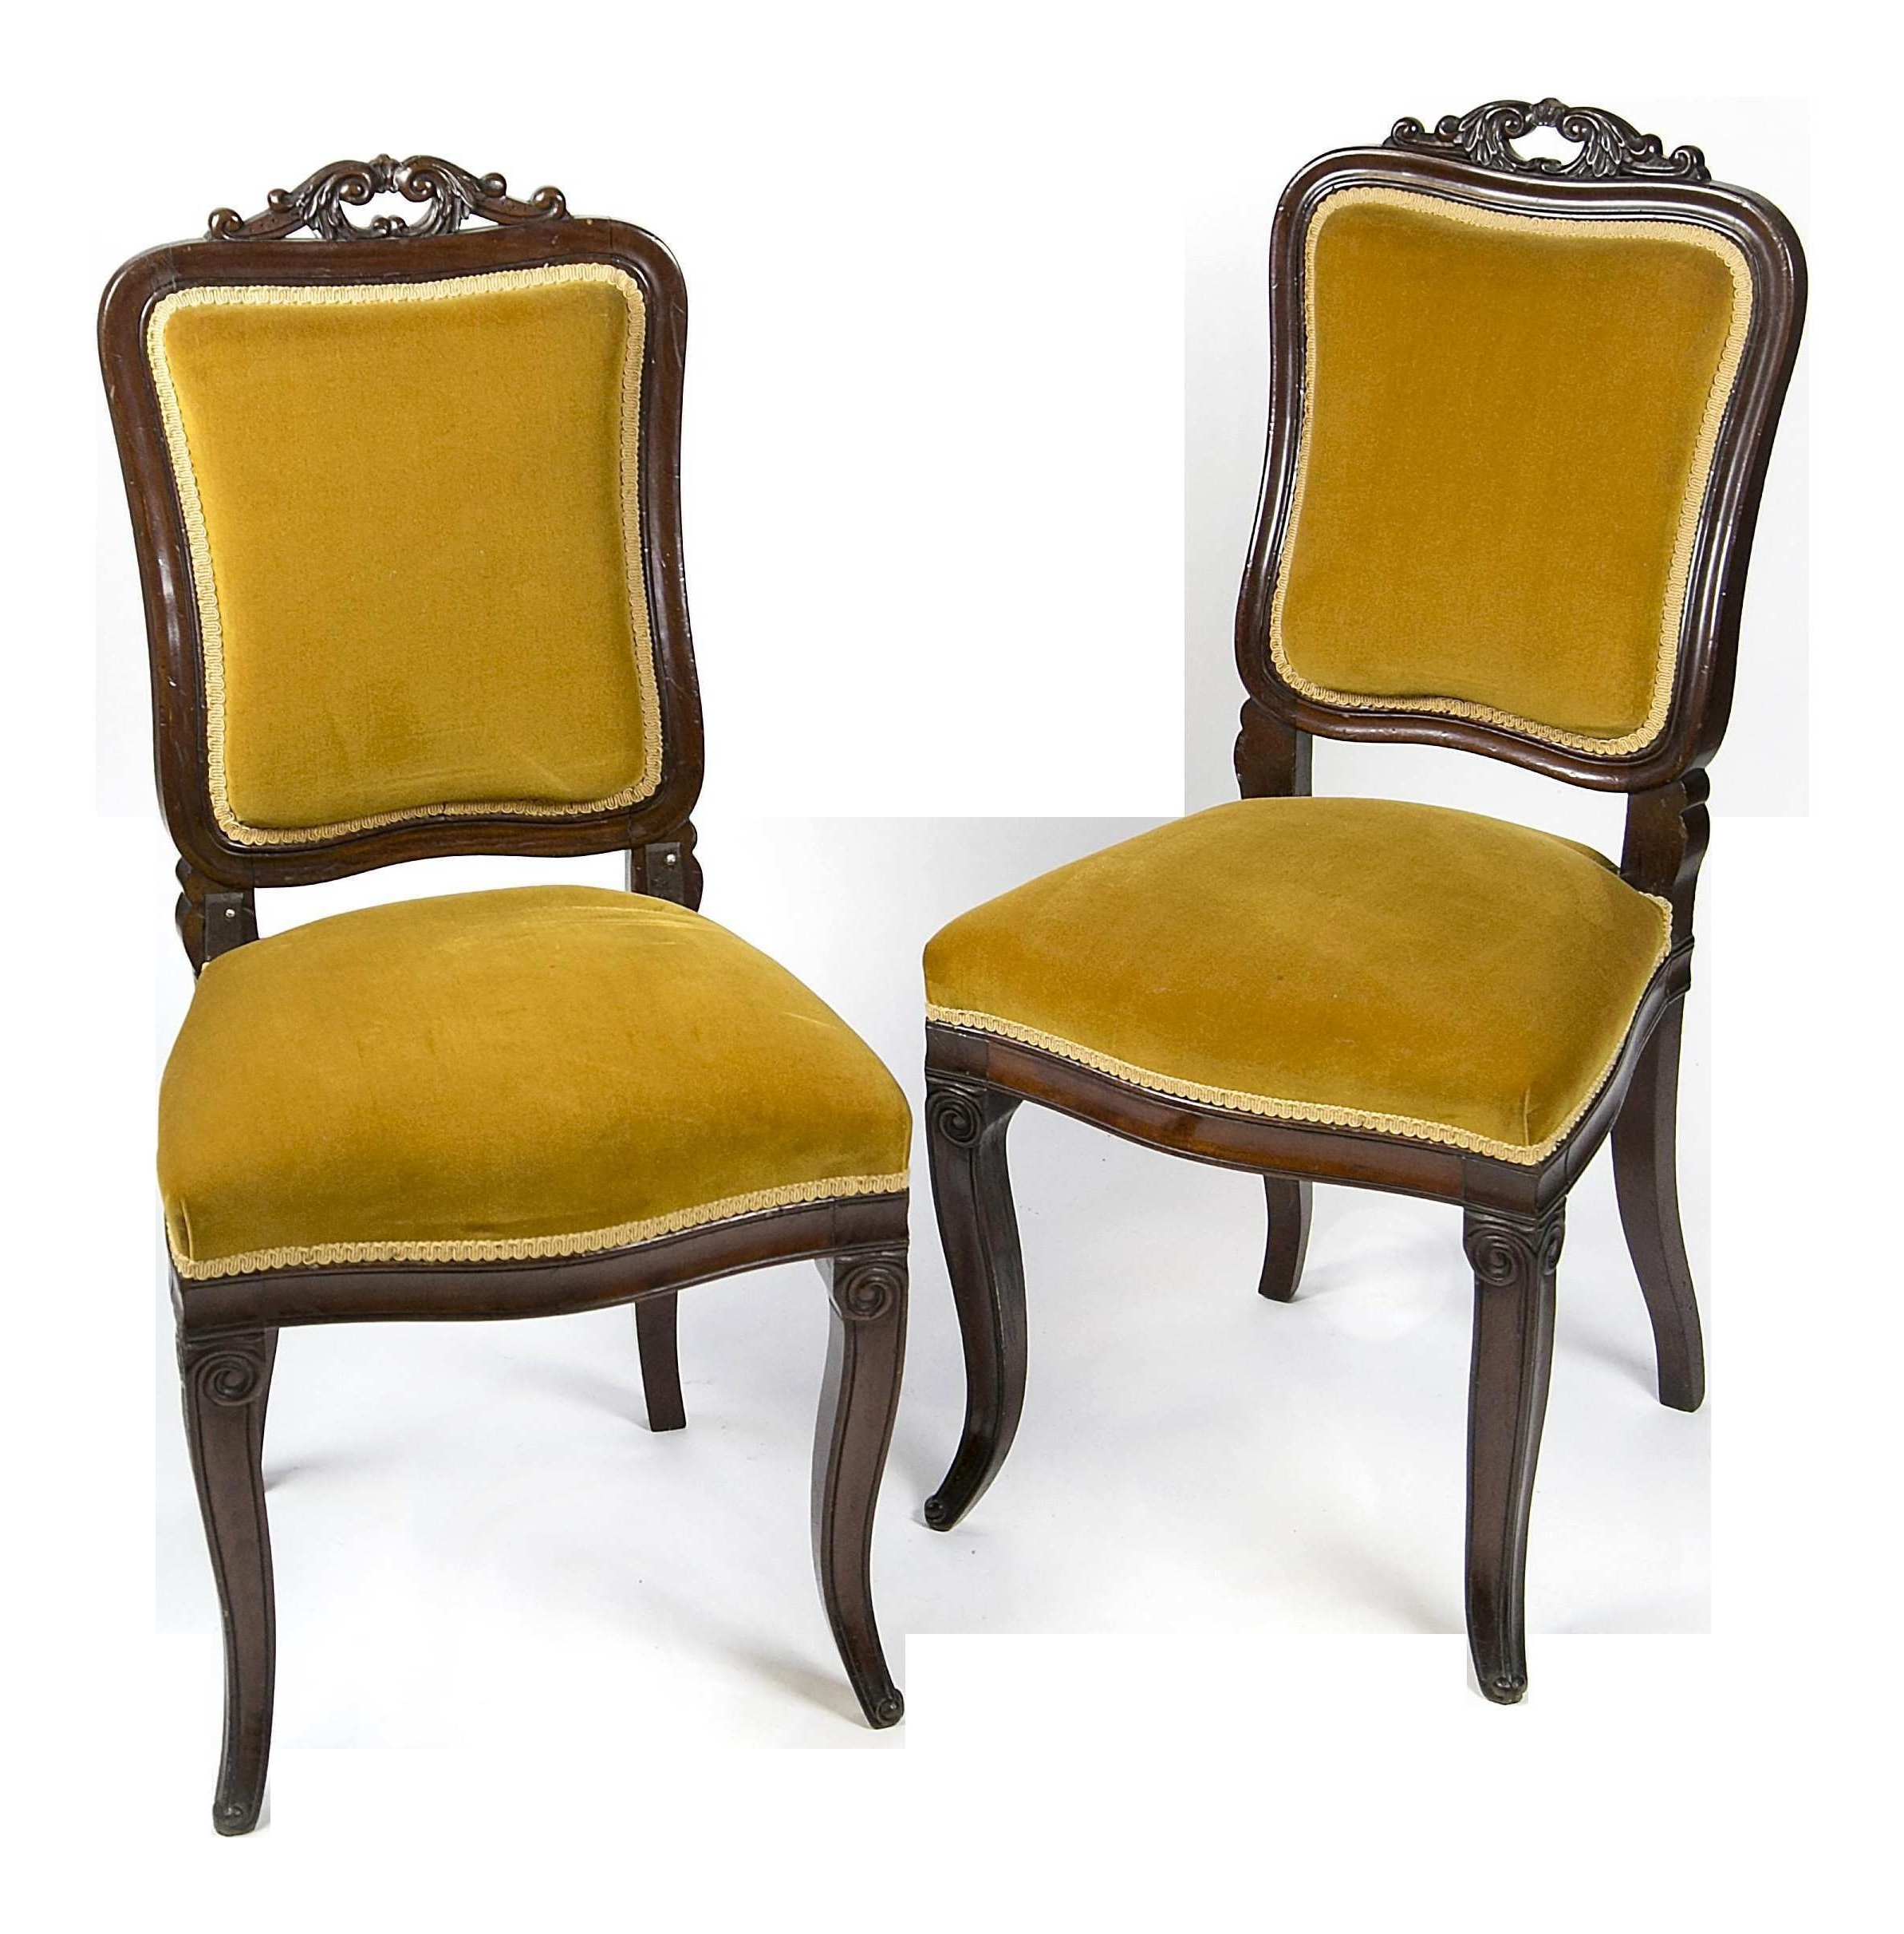 Trendy Dining Chairs Ebay In Victorian Dining Chairs Ebay Unique Accent Chairs Victorian Elegant (View 21 of 25)